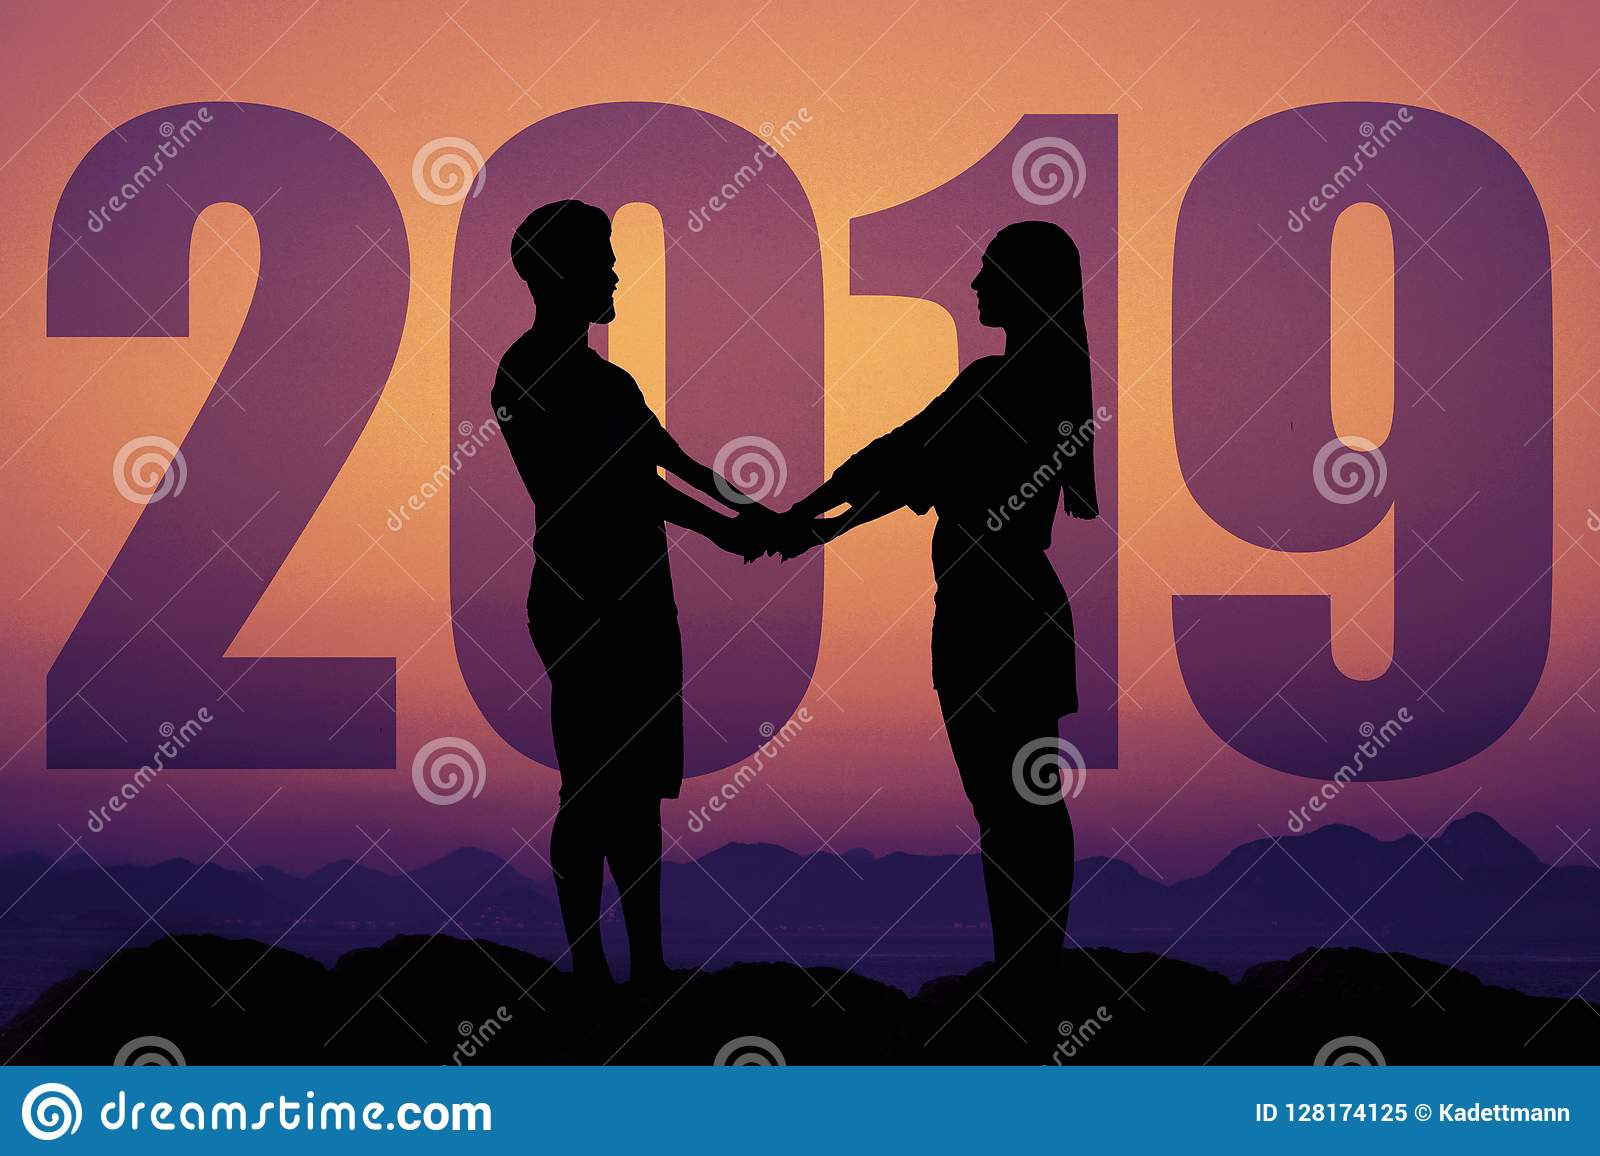 Silhouette Of A Love Couple At Sunset With New Year 2019 Stock Image